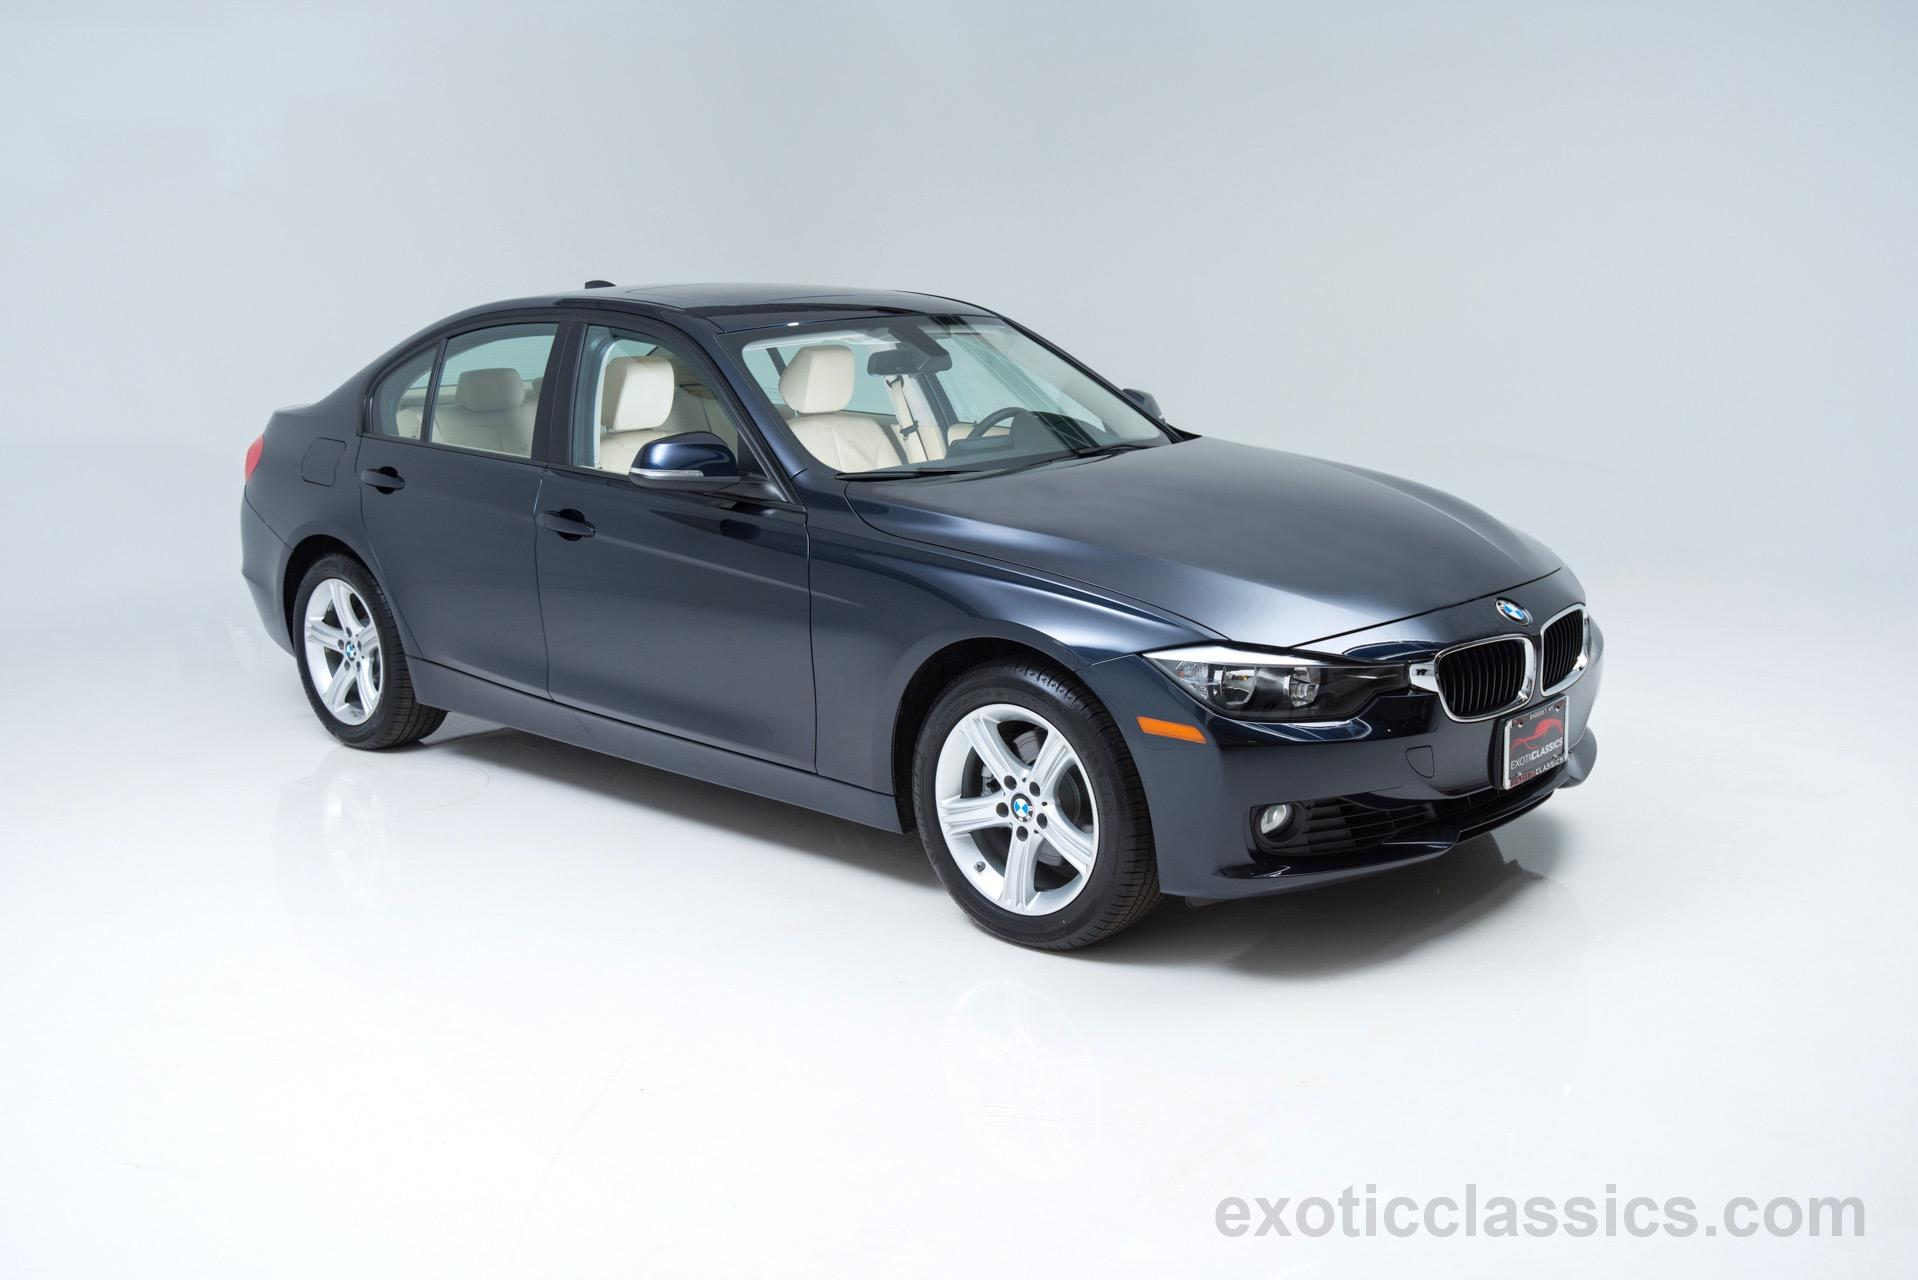 hight resolution of 2013 bmw 328i xdrive 328i xdrive